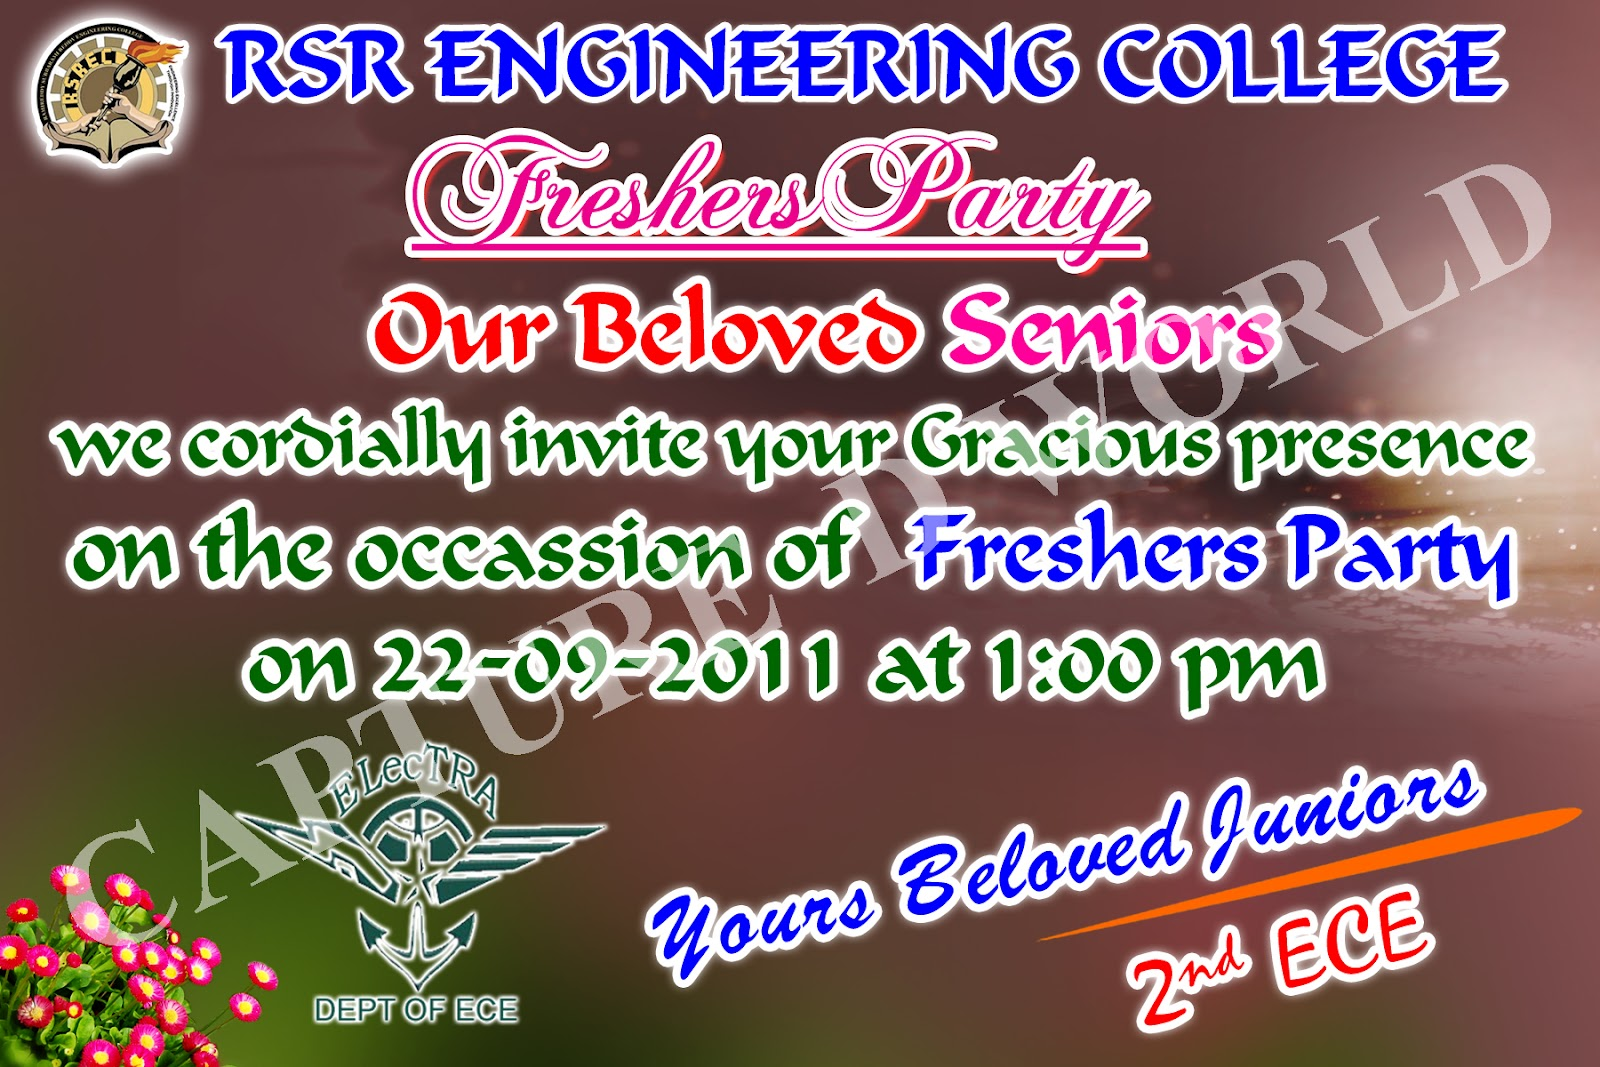 now i have showing the freshers party invitation card